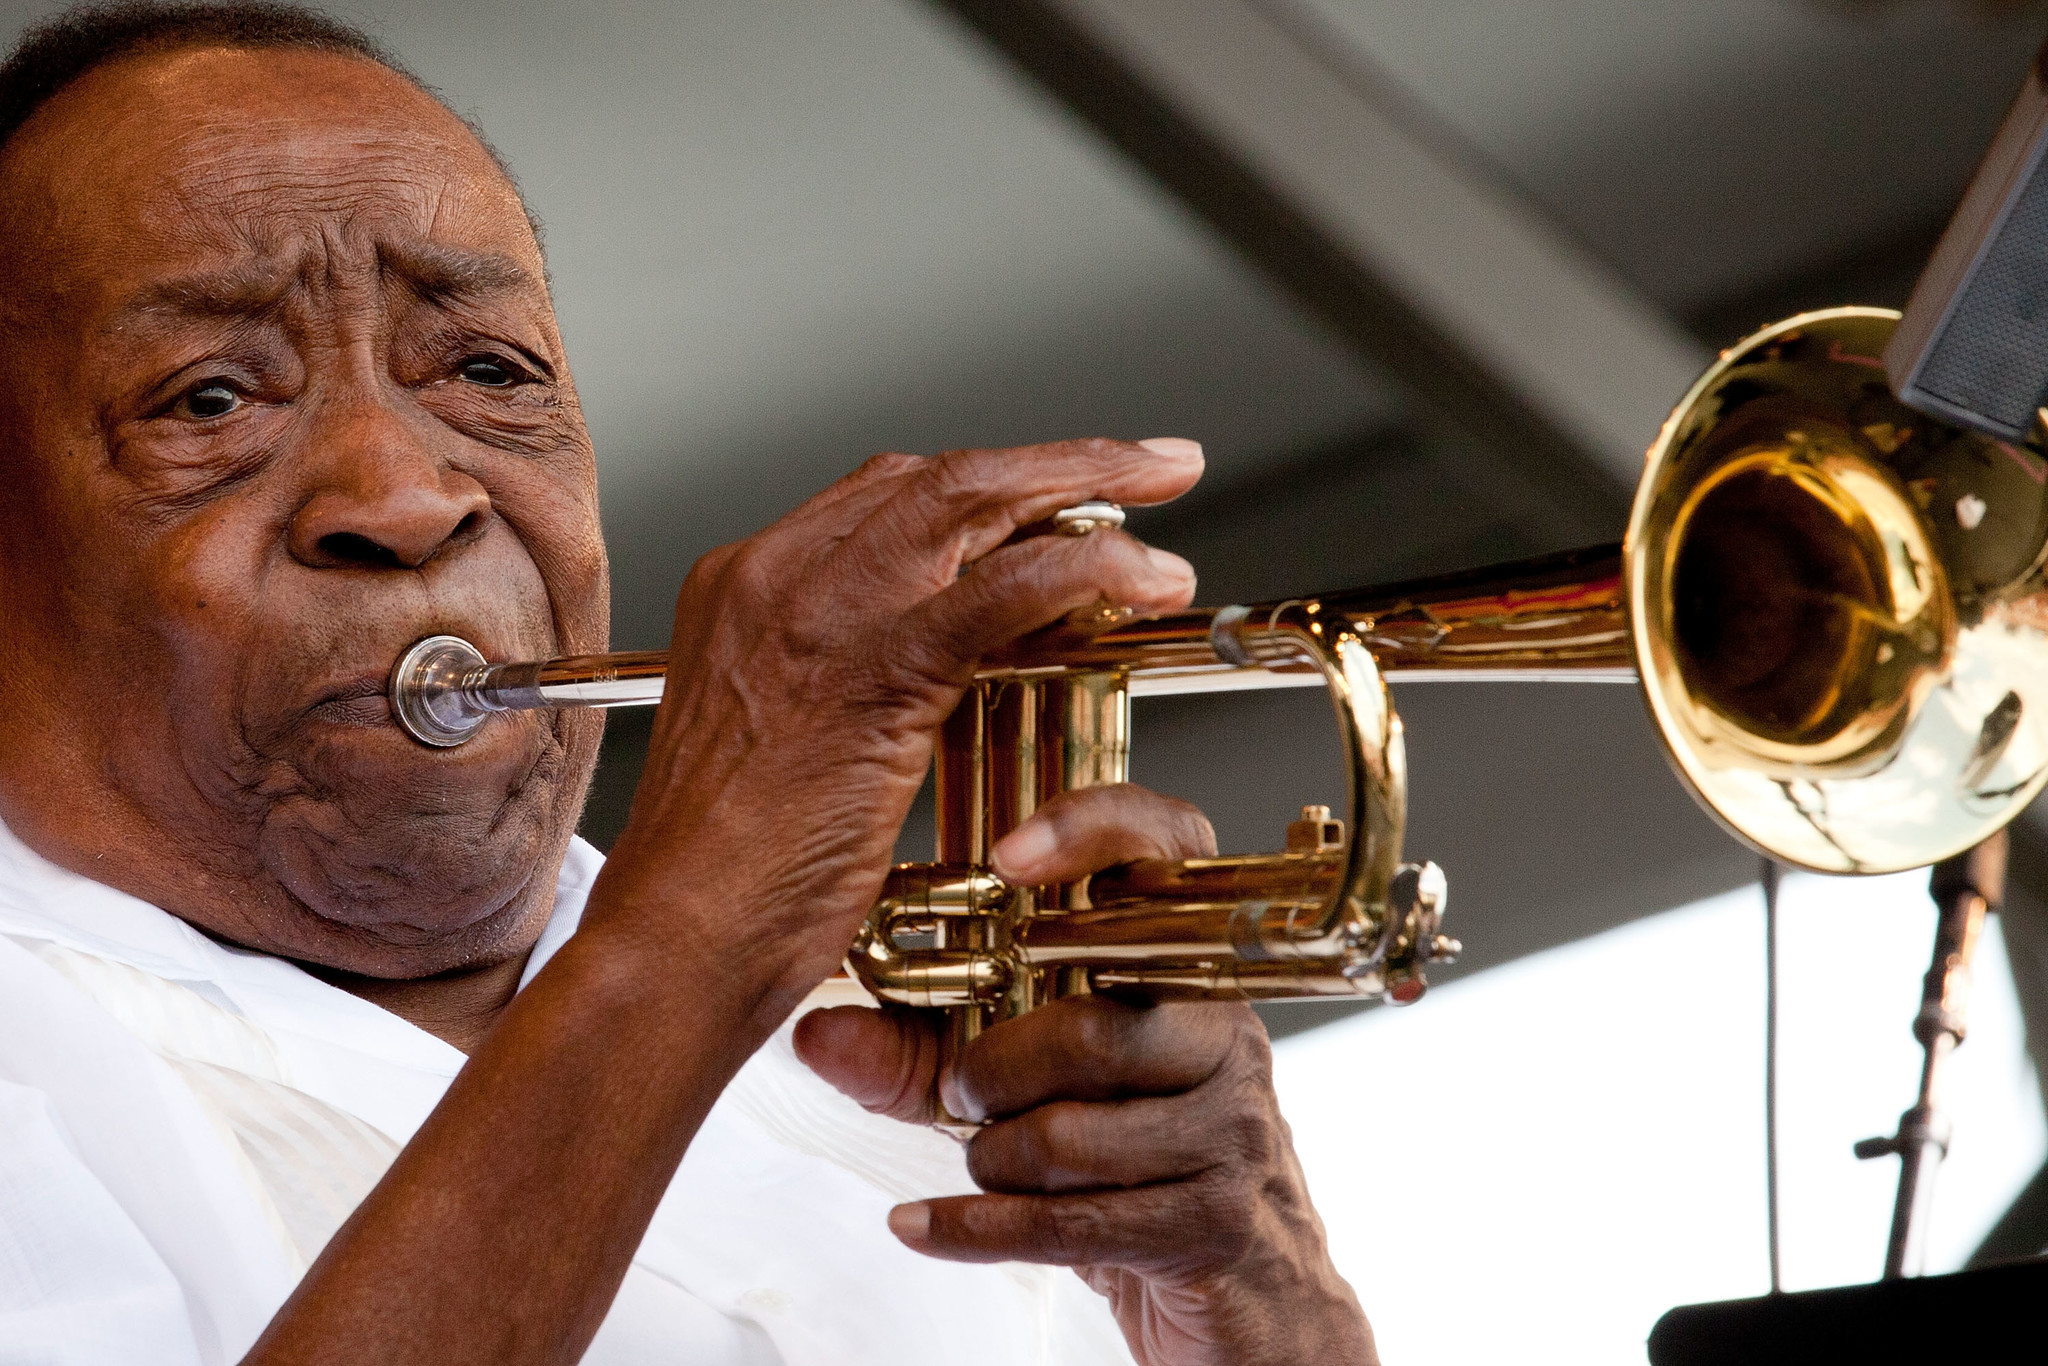 Rock 'n' roll pioneer Dave Bartholomew dead at 100